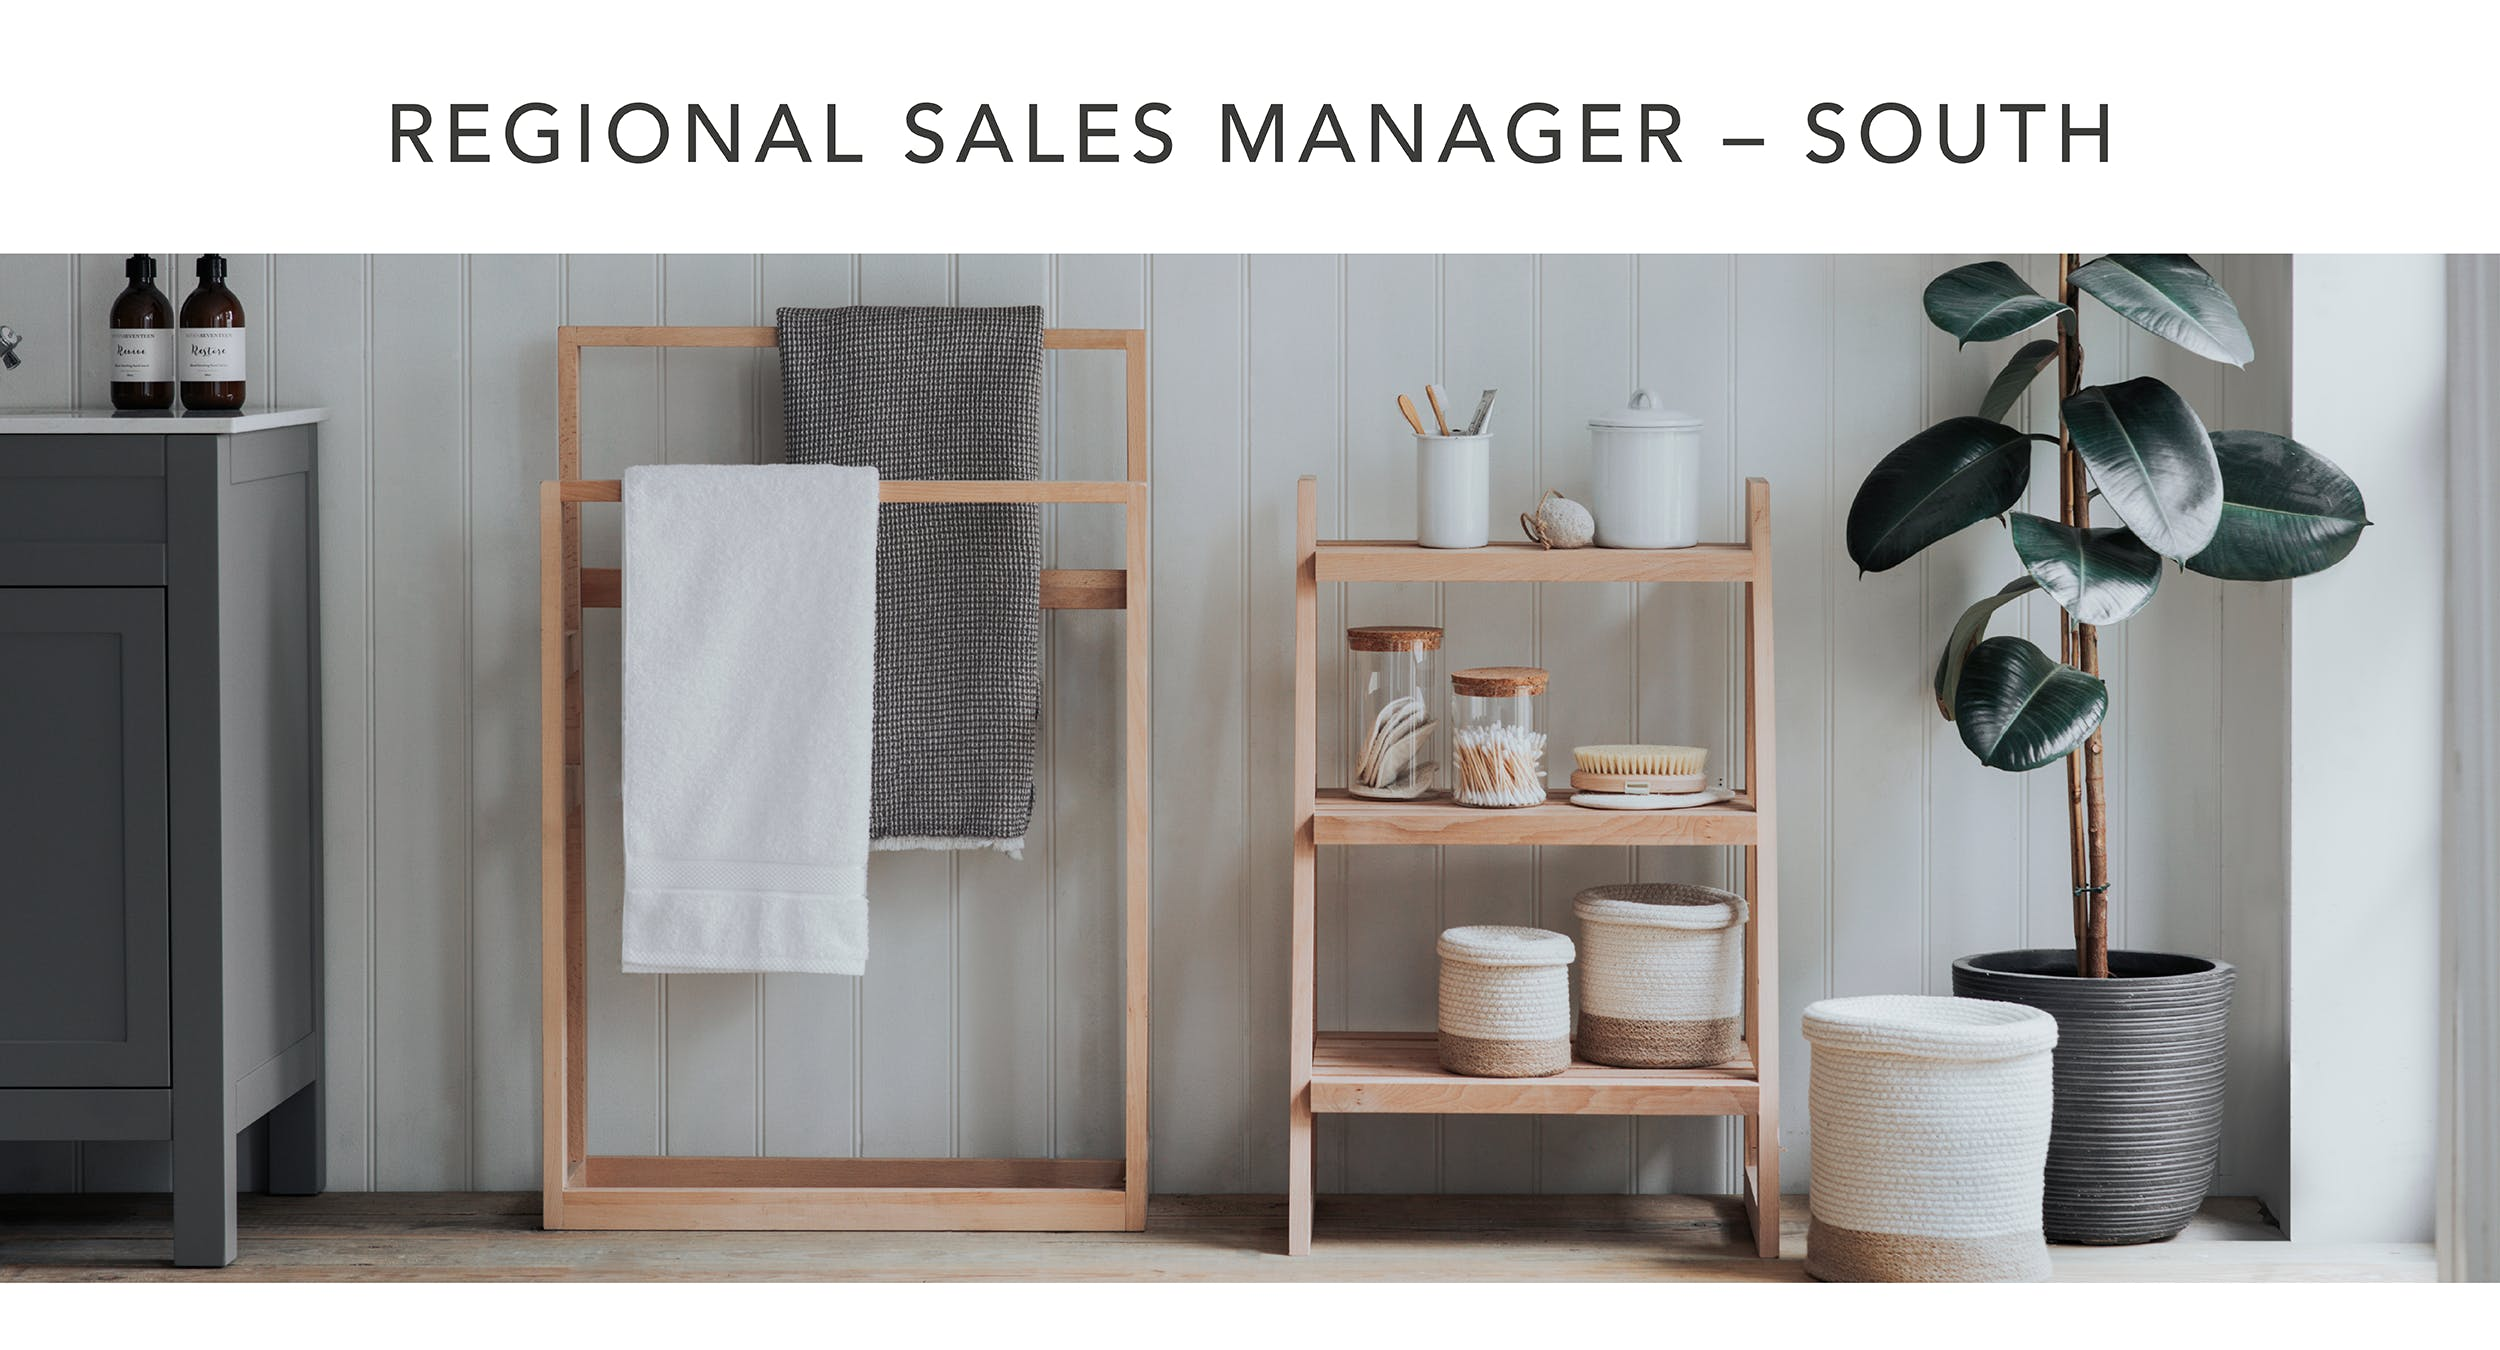 Regional Sales Manager - South